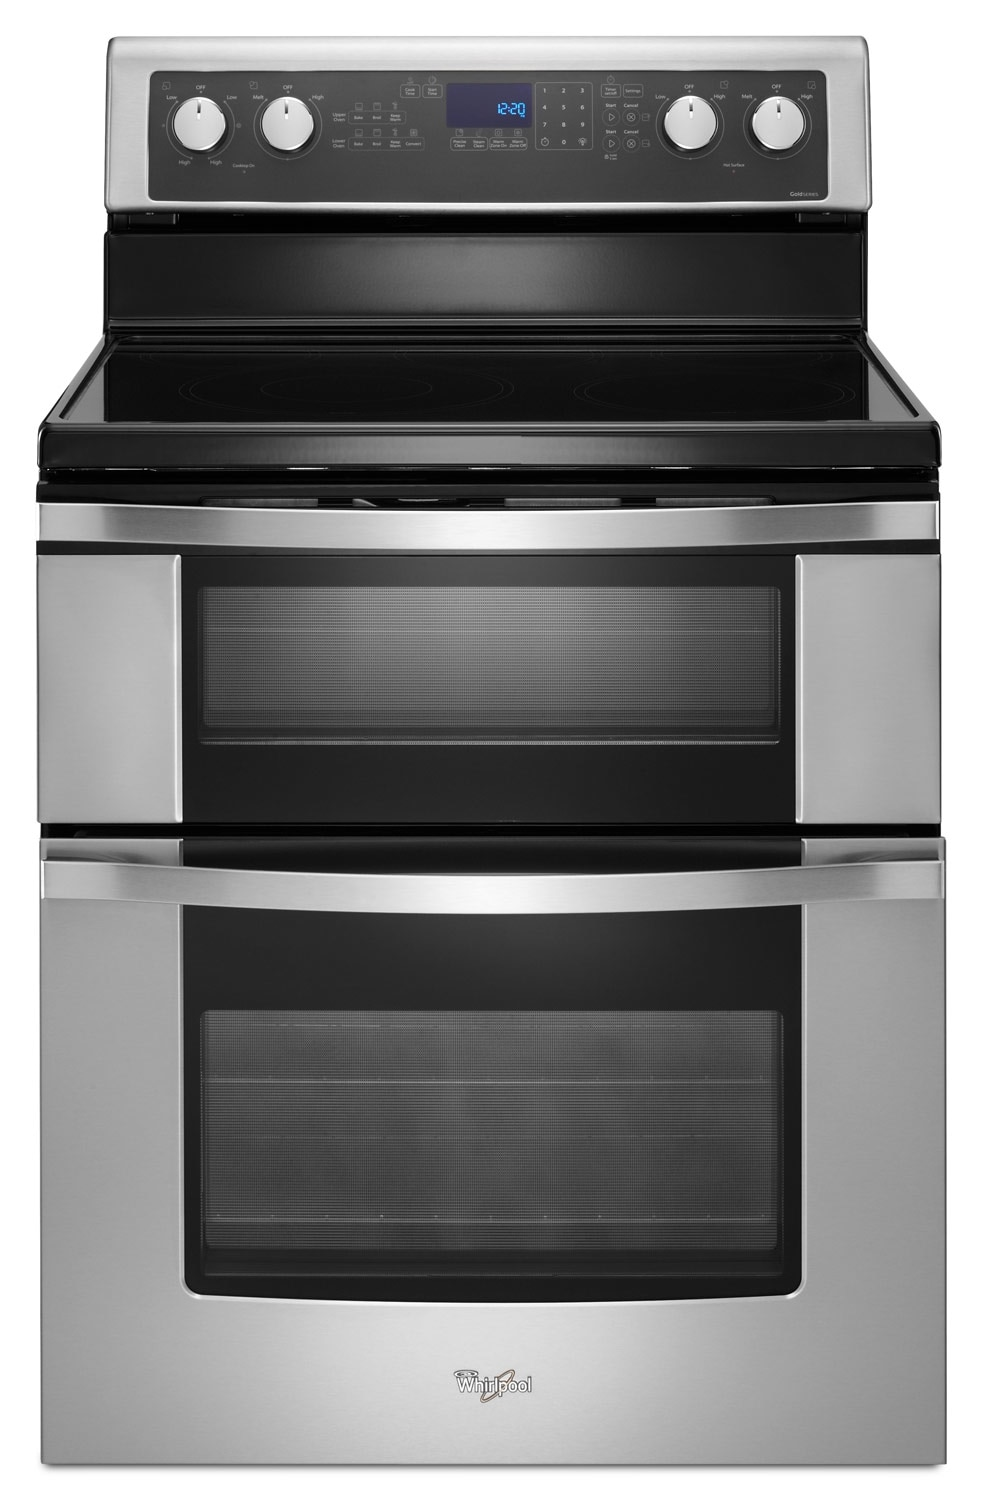 Whirlpool Stainless Steel Freestanding Double Electric Range (6.7 Cu. Ft.) - YWGE755C0BS